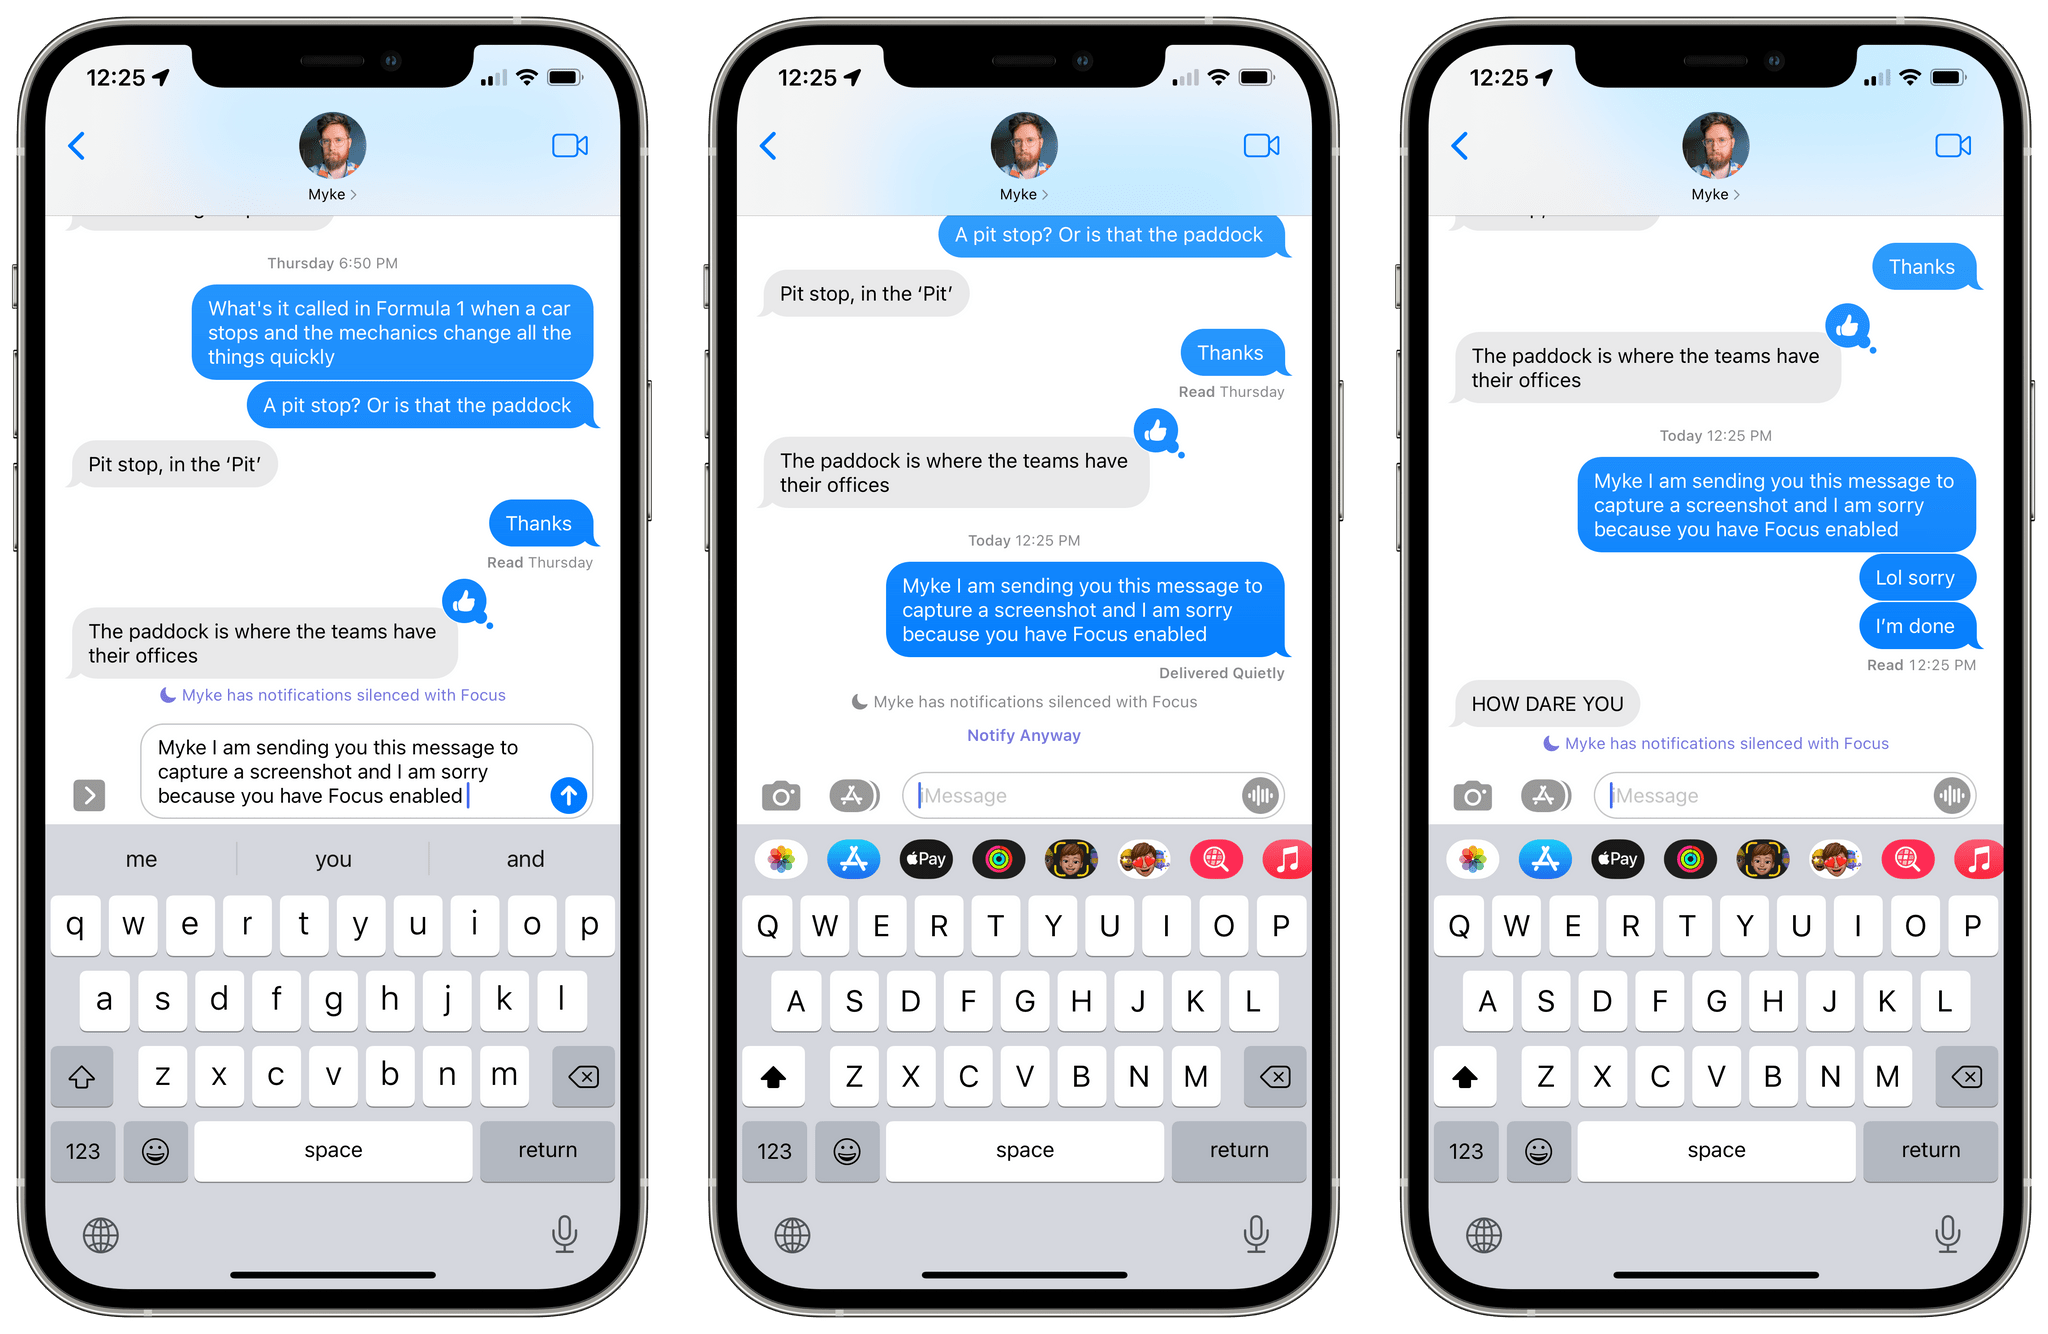 How to anger your friends with iOS 15, step 1: Notify Anyway.